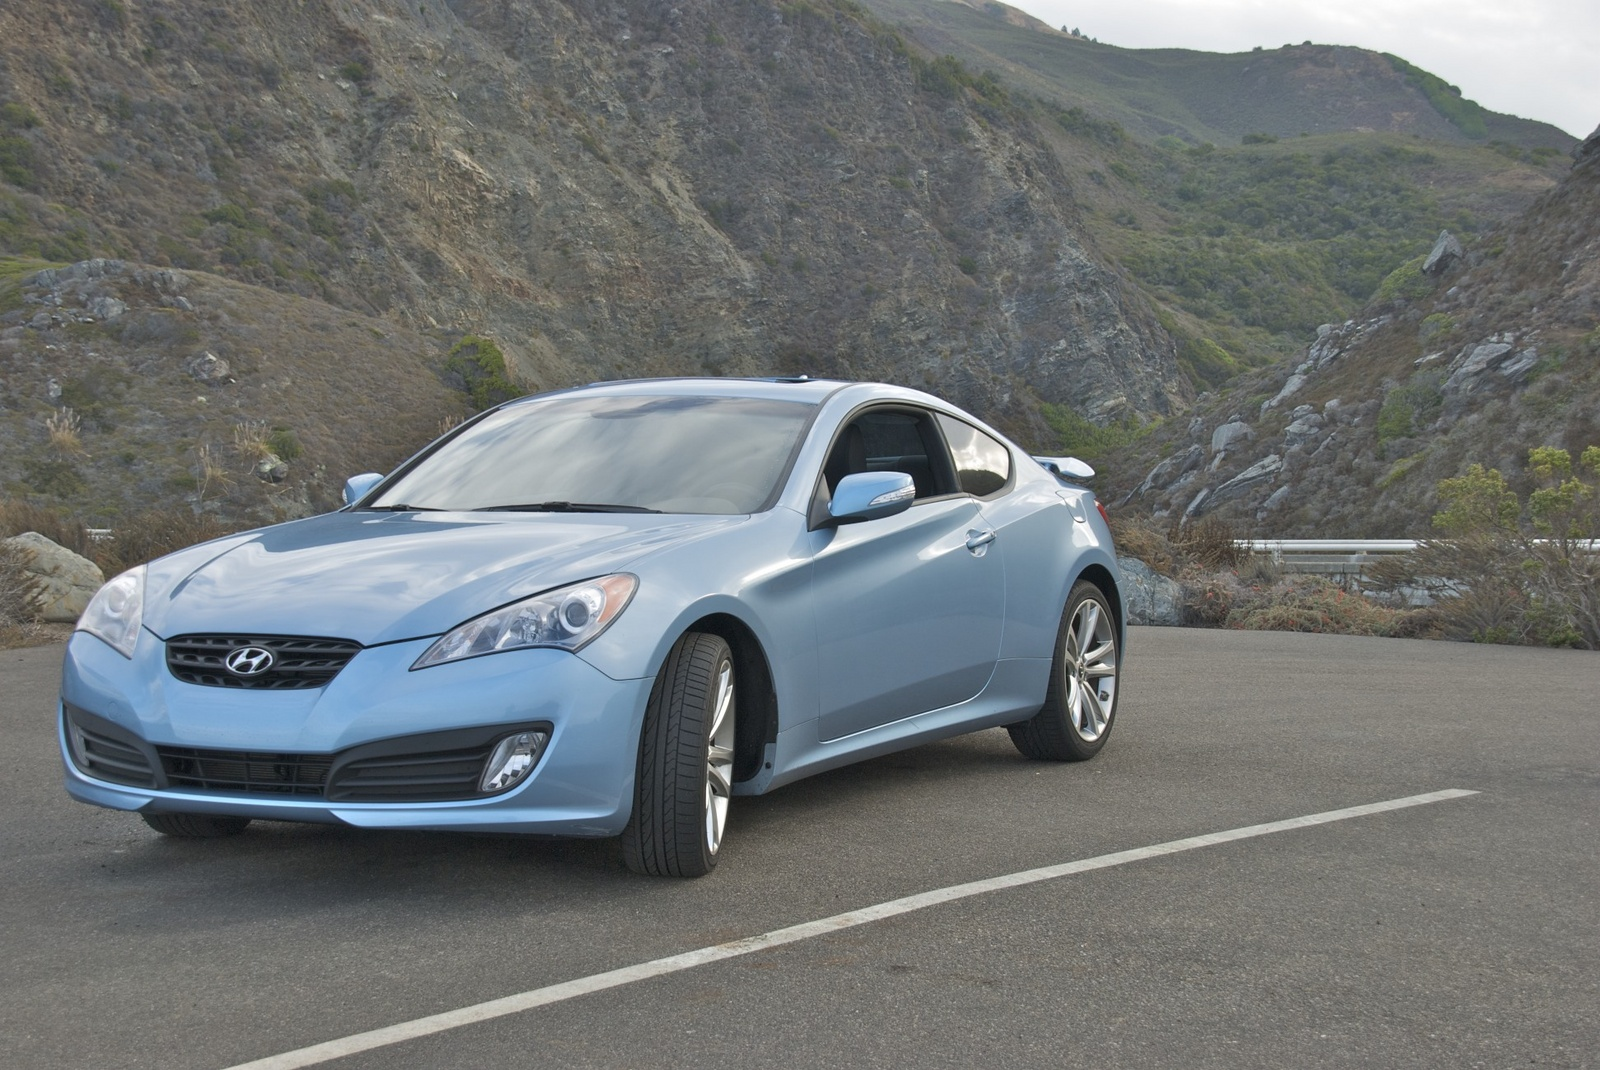 picture of 2010 hyundai genesis coupe 3 8 track exterior. Black Bedroom Furniture Sets. Home Design Ideas